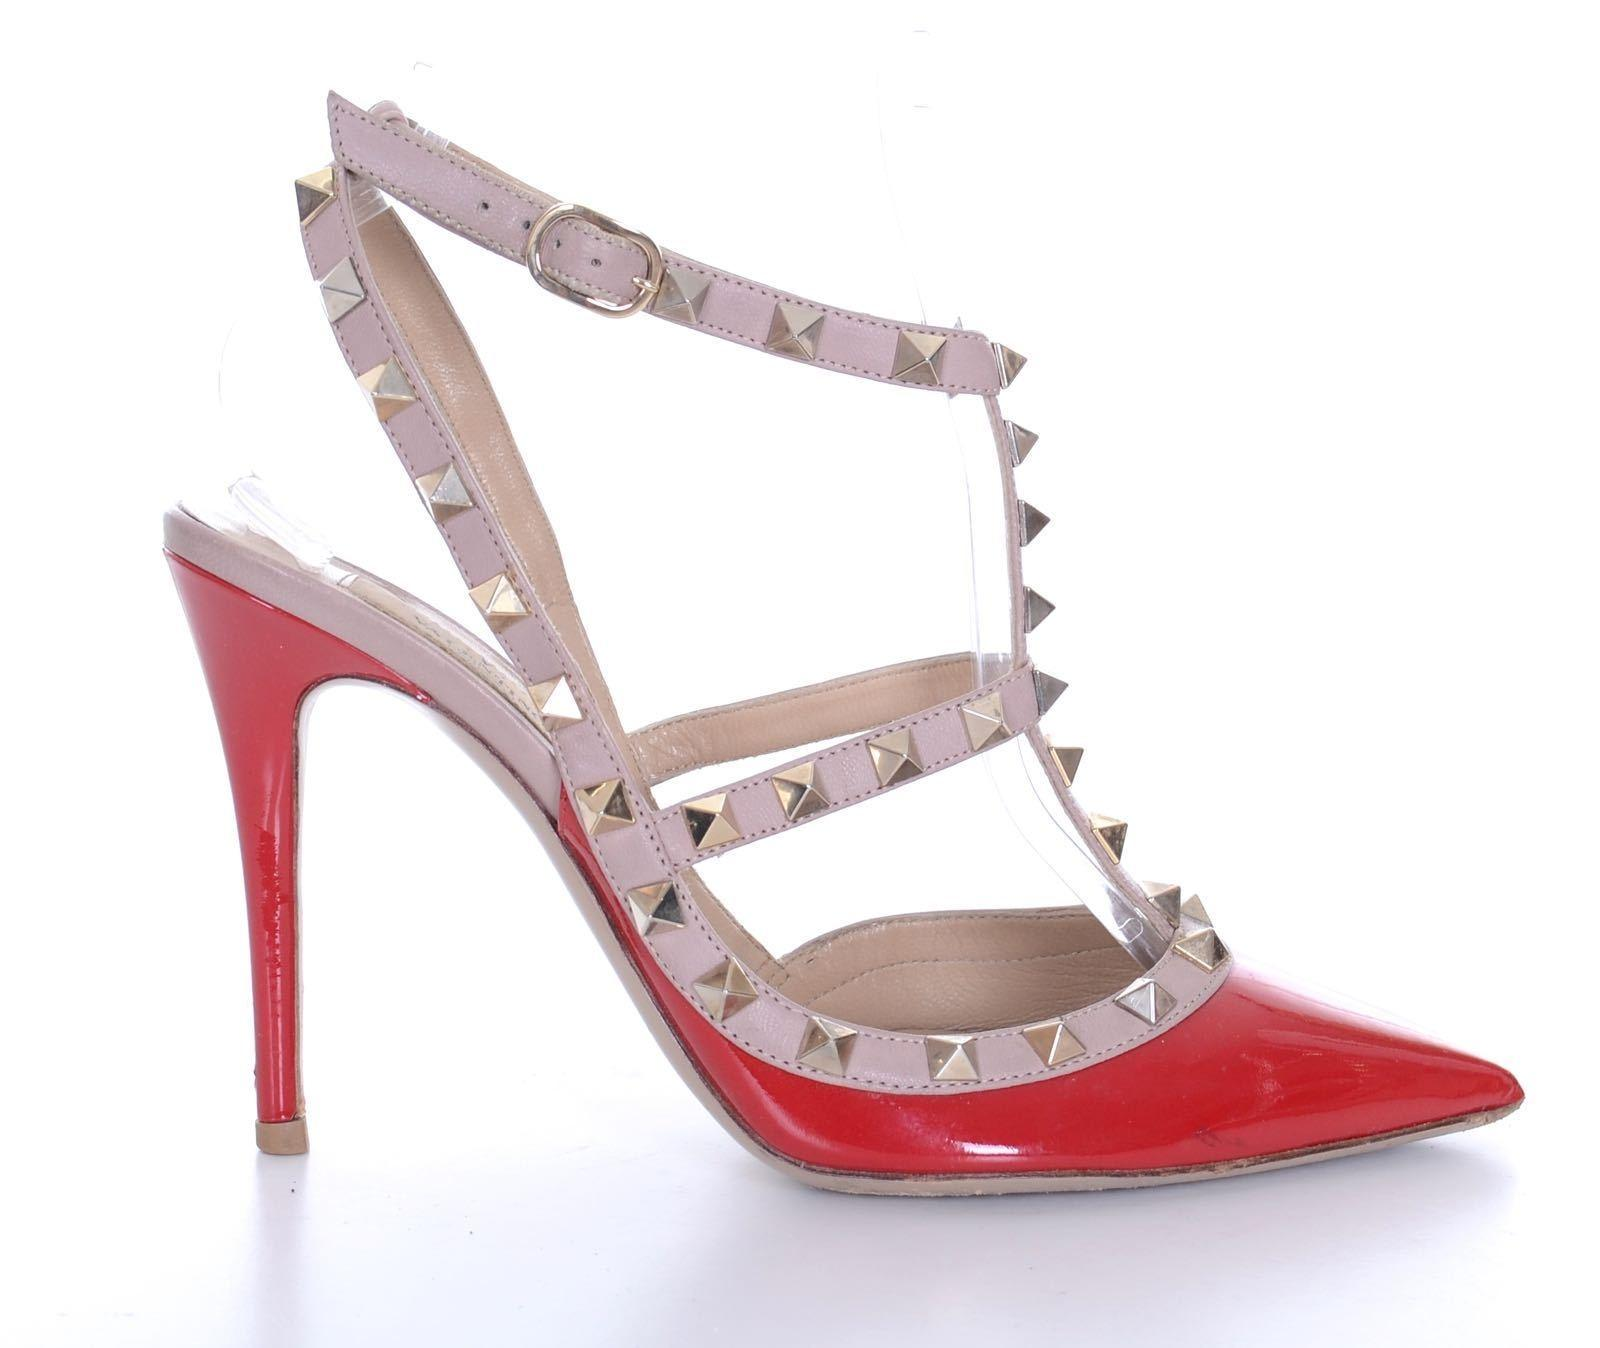 Valentino Red Patent Leather Rockstud Cage Heels Stilettos Pumps Size EU 37.5 (Approx. US 7.5) Regular (M, B)